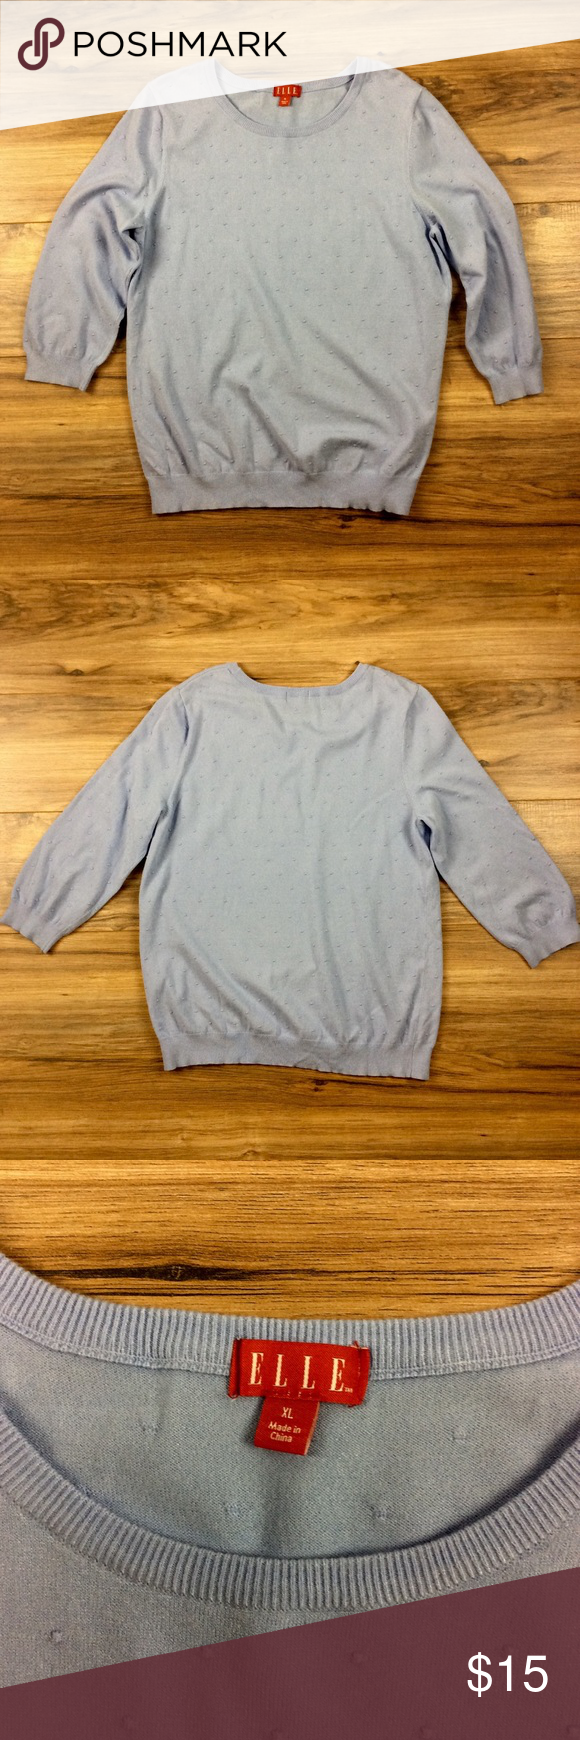 ELLE Top ELLE light blue cute polka dot top. 100% cotton. Light sweater material. Great condition. ELLE Sweaters Crew & Scoop Necks